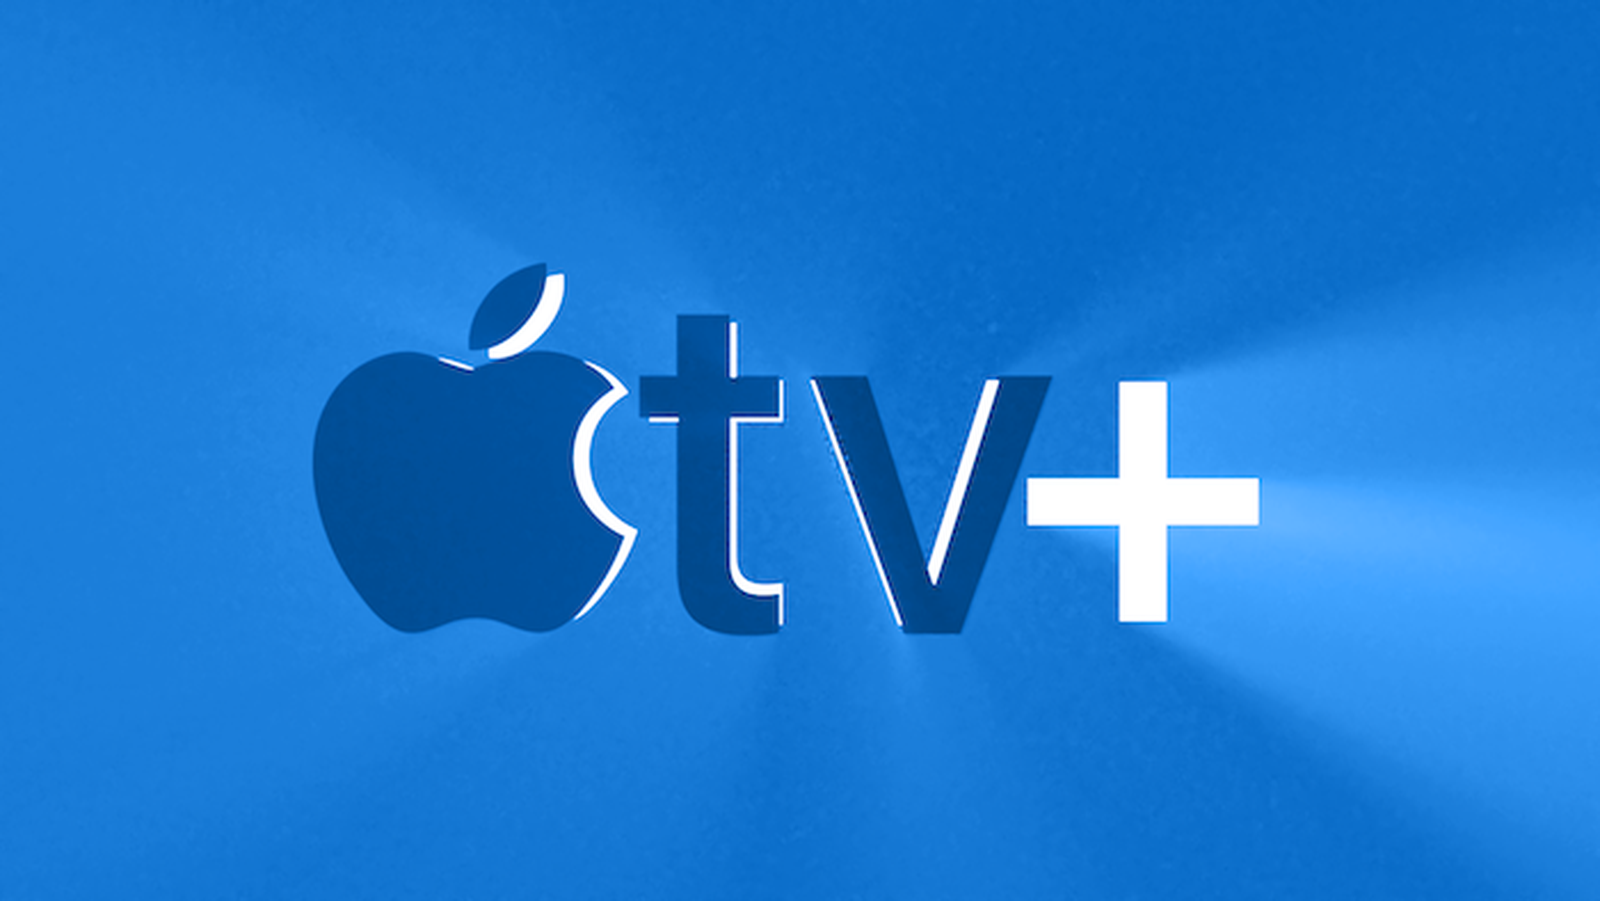 Apple TV Ray Light Blue.'